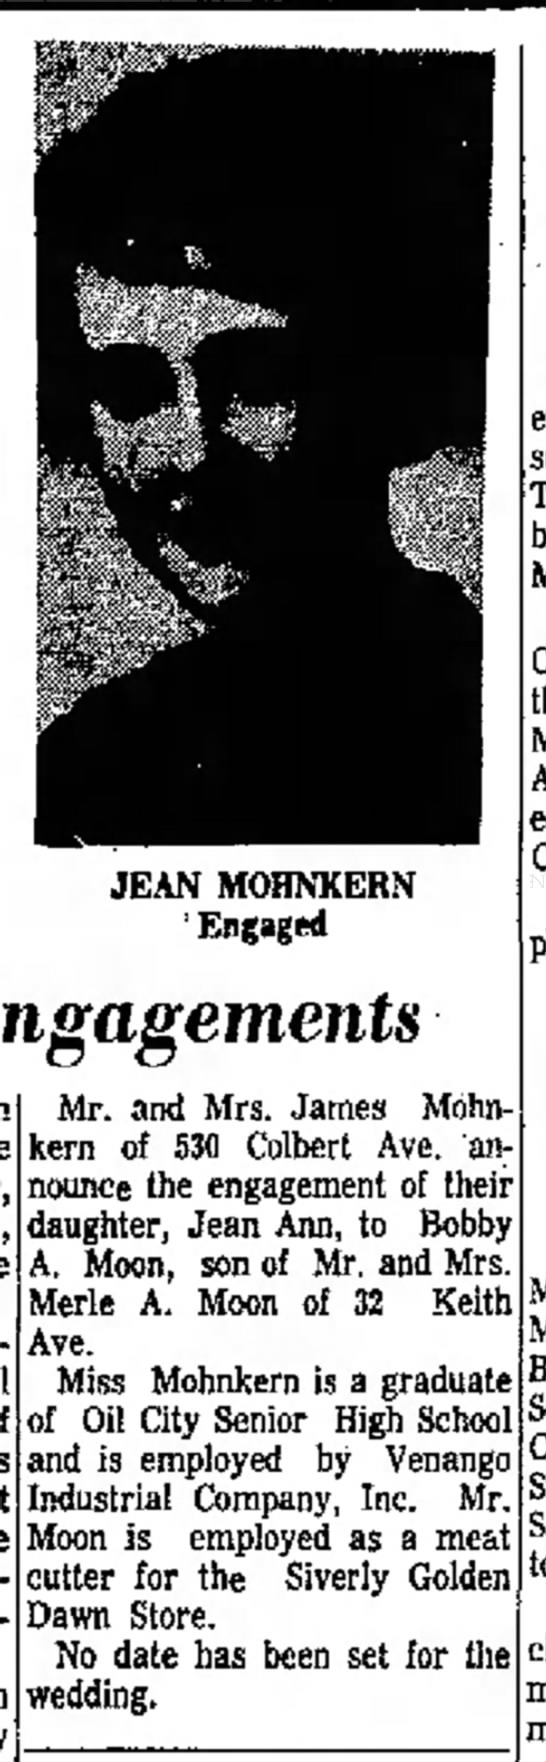 Bobby A Moon & Jean Ann Mohnkern engagement announcement April 1964 - Engagements JEAN MOHNKERN ' Engaged Mr. and...